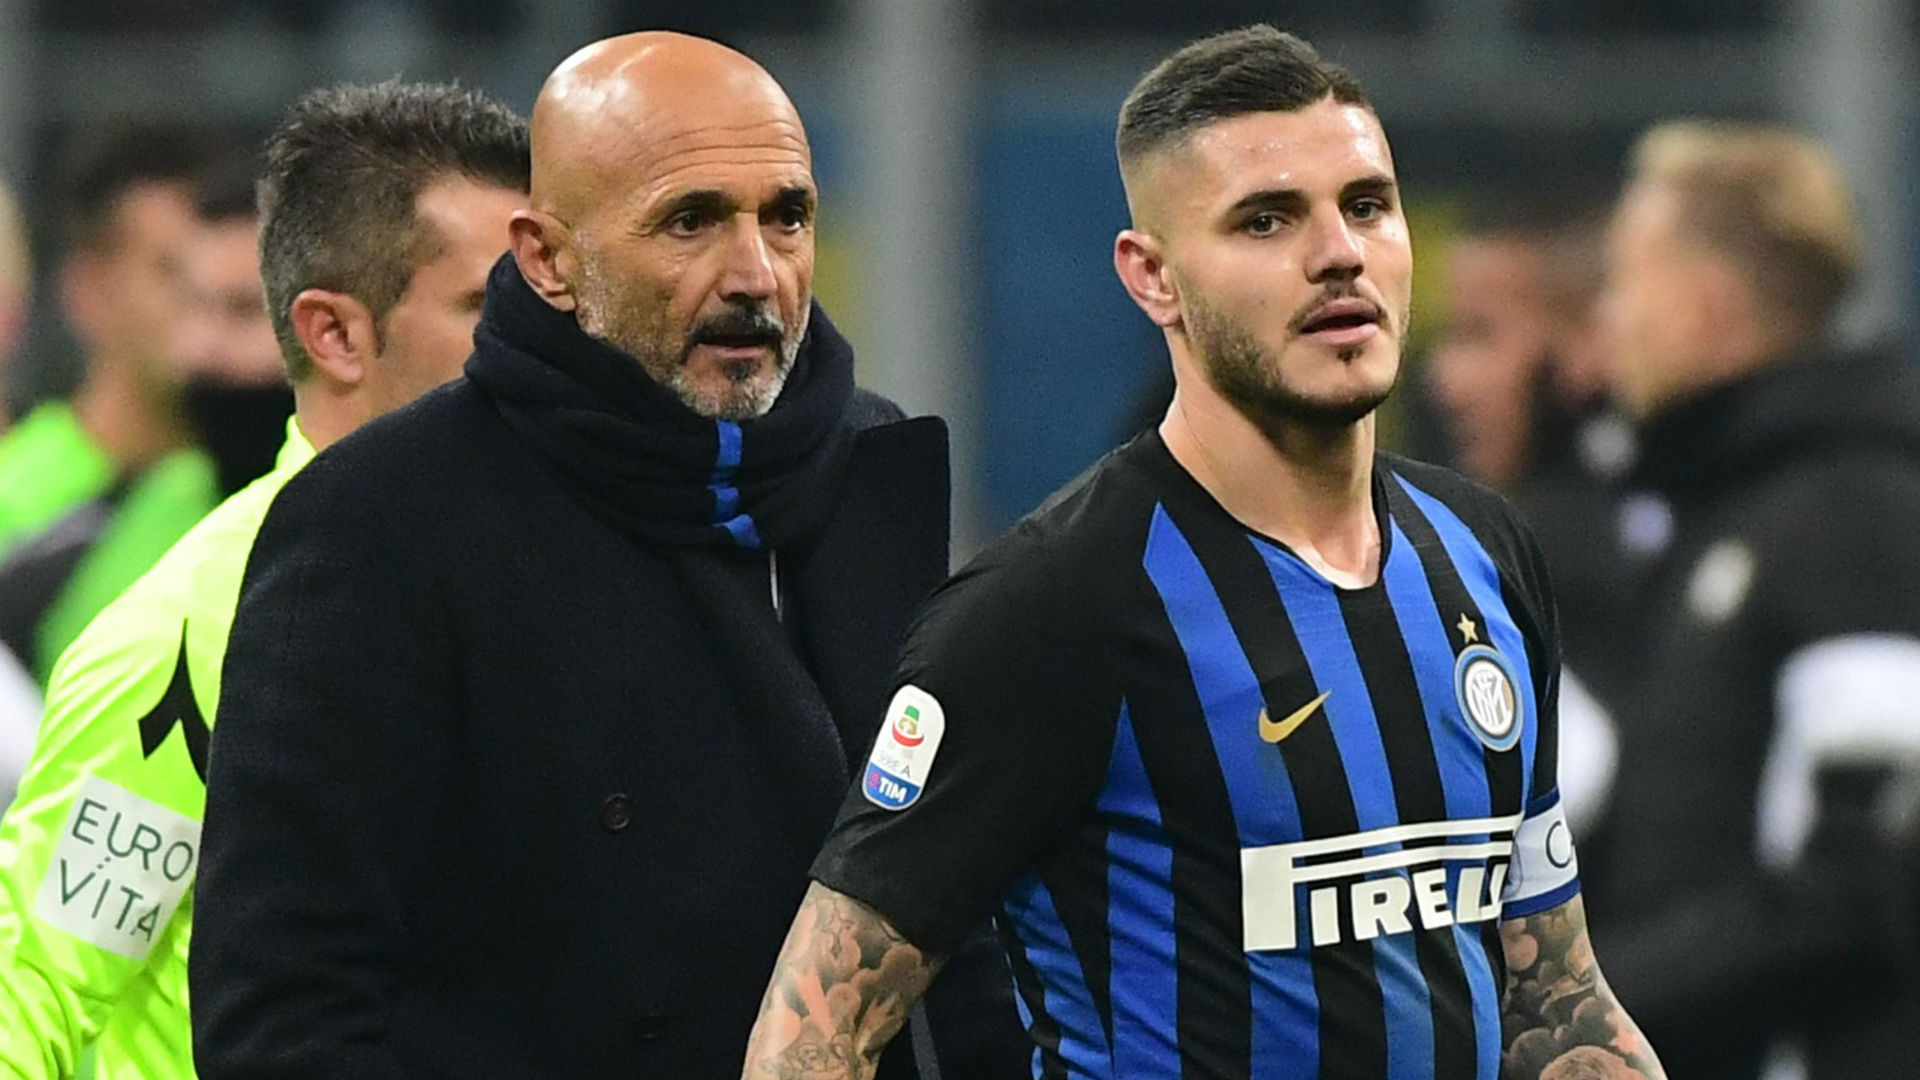 Mauro Icardi stripped of Inter Milan captaincy